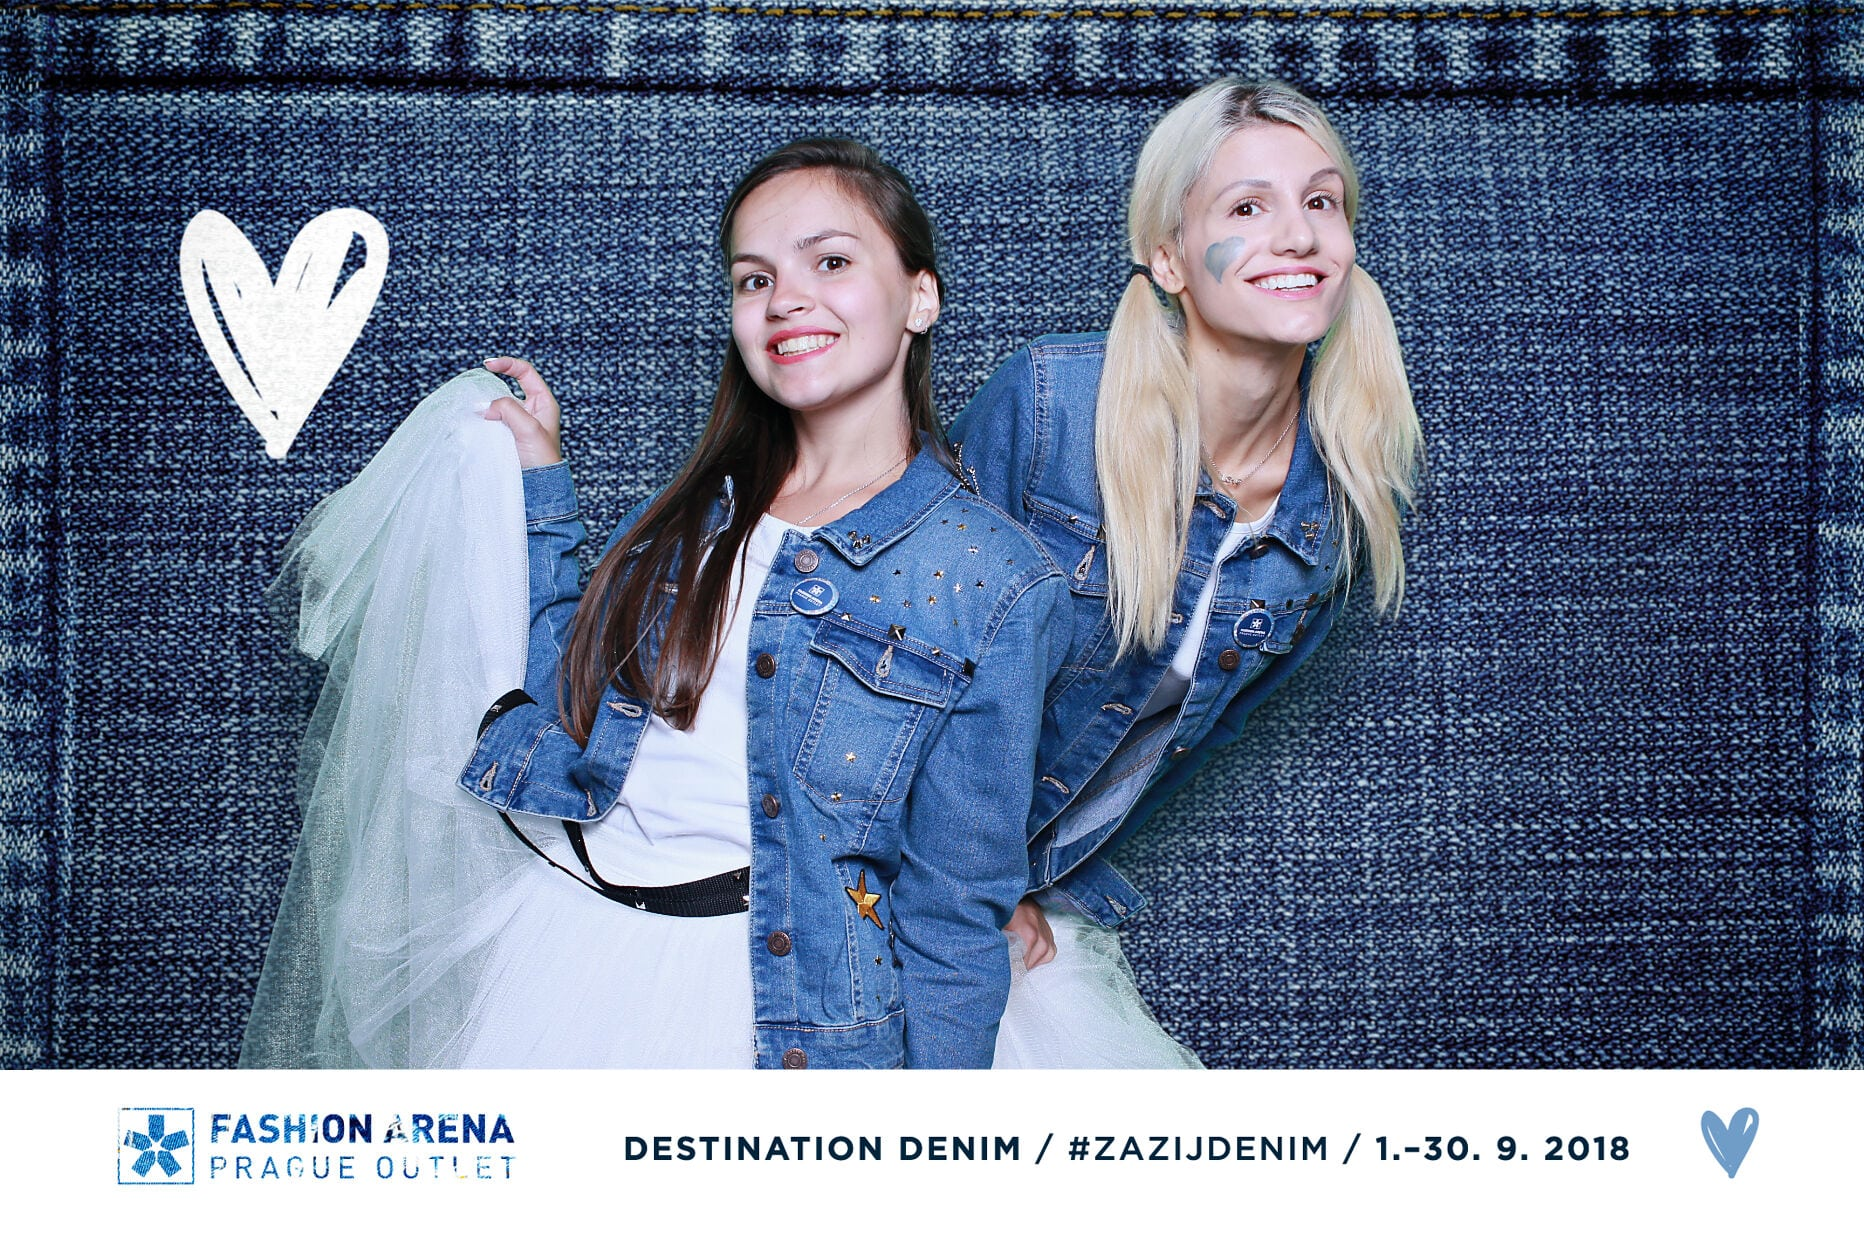 fotokoutek-denim-16-9-2018-485073